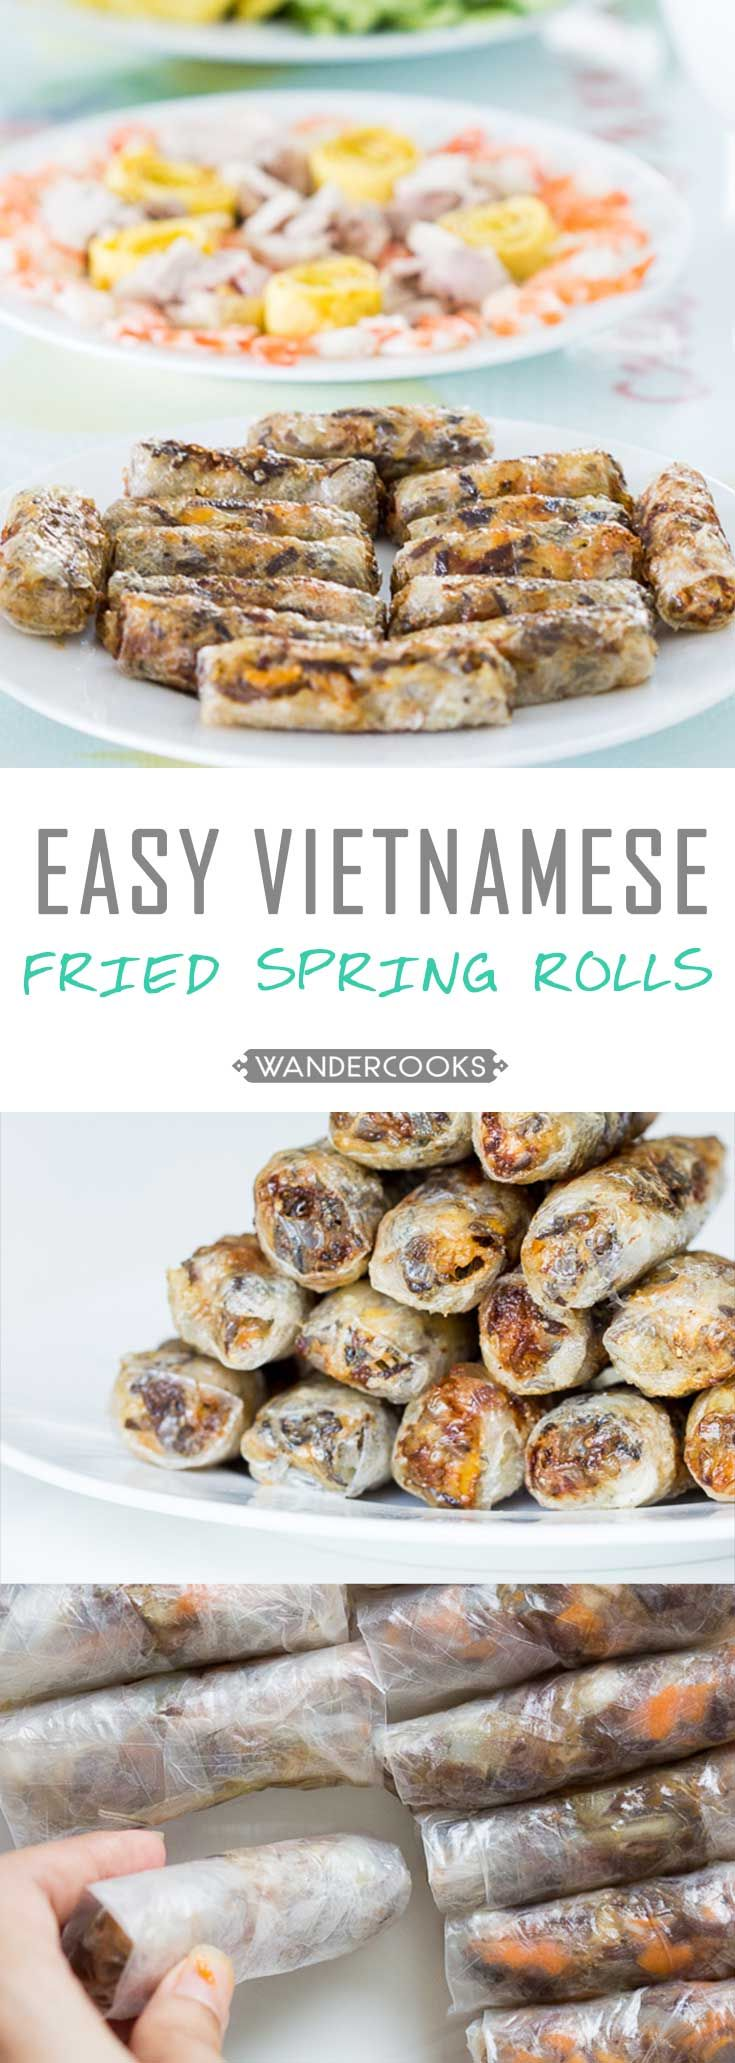 Easy Vietnamese Fried Spring Rolls - Filled with pork and prawn (shrimp) goodness, these spring rolls are lightly fried for a crispy, crunchy and flavour packed appetiser. Gluten Free. | wandercooks.com